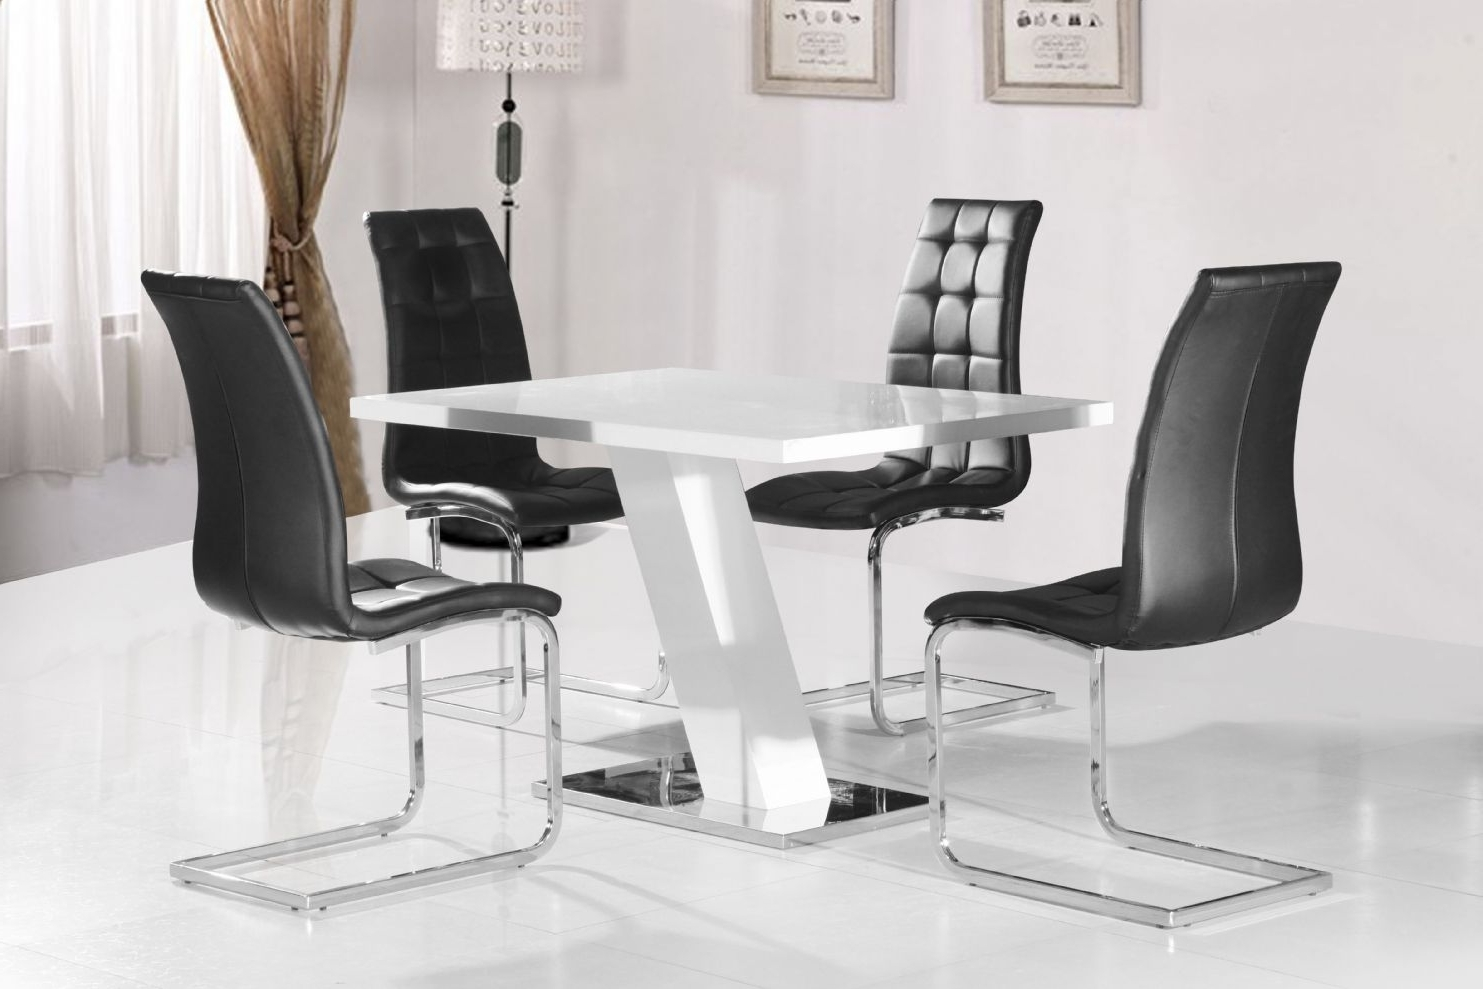 Trendy White High Gloss Dining Tables Regarding Grazia White High Gloss Contemporary Designer 120 Cm Compact Dining (View 15 of 25)